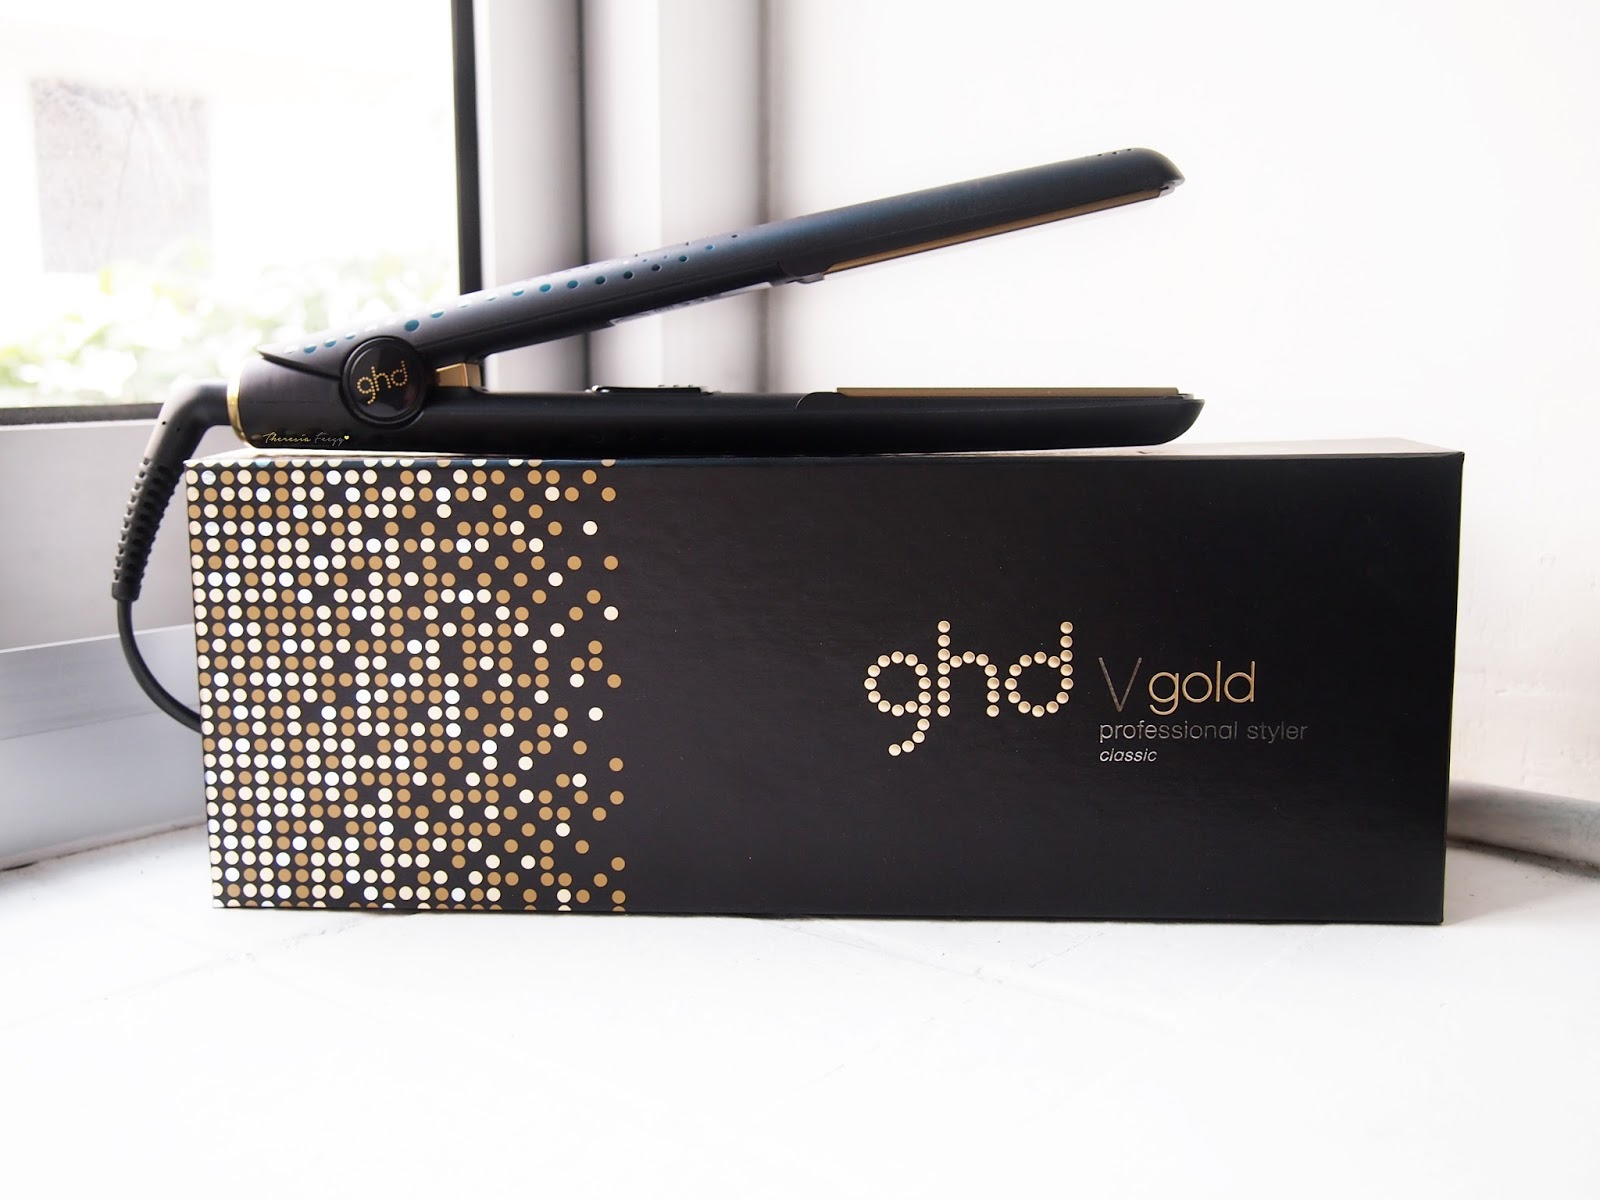 ghd v gold classic hair styler from ghd indonesia the best. Black Bedroom Furniture Sets. Home Design Ideas